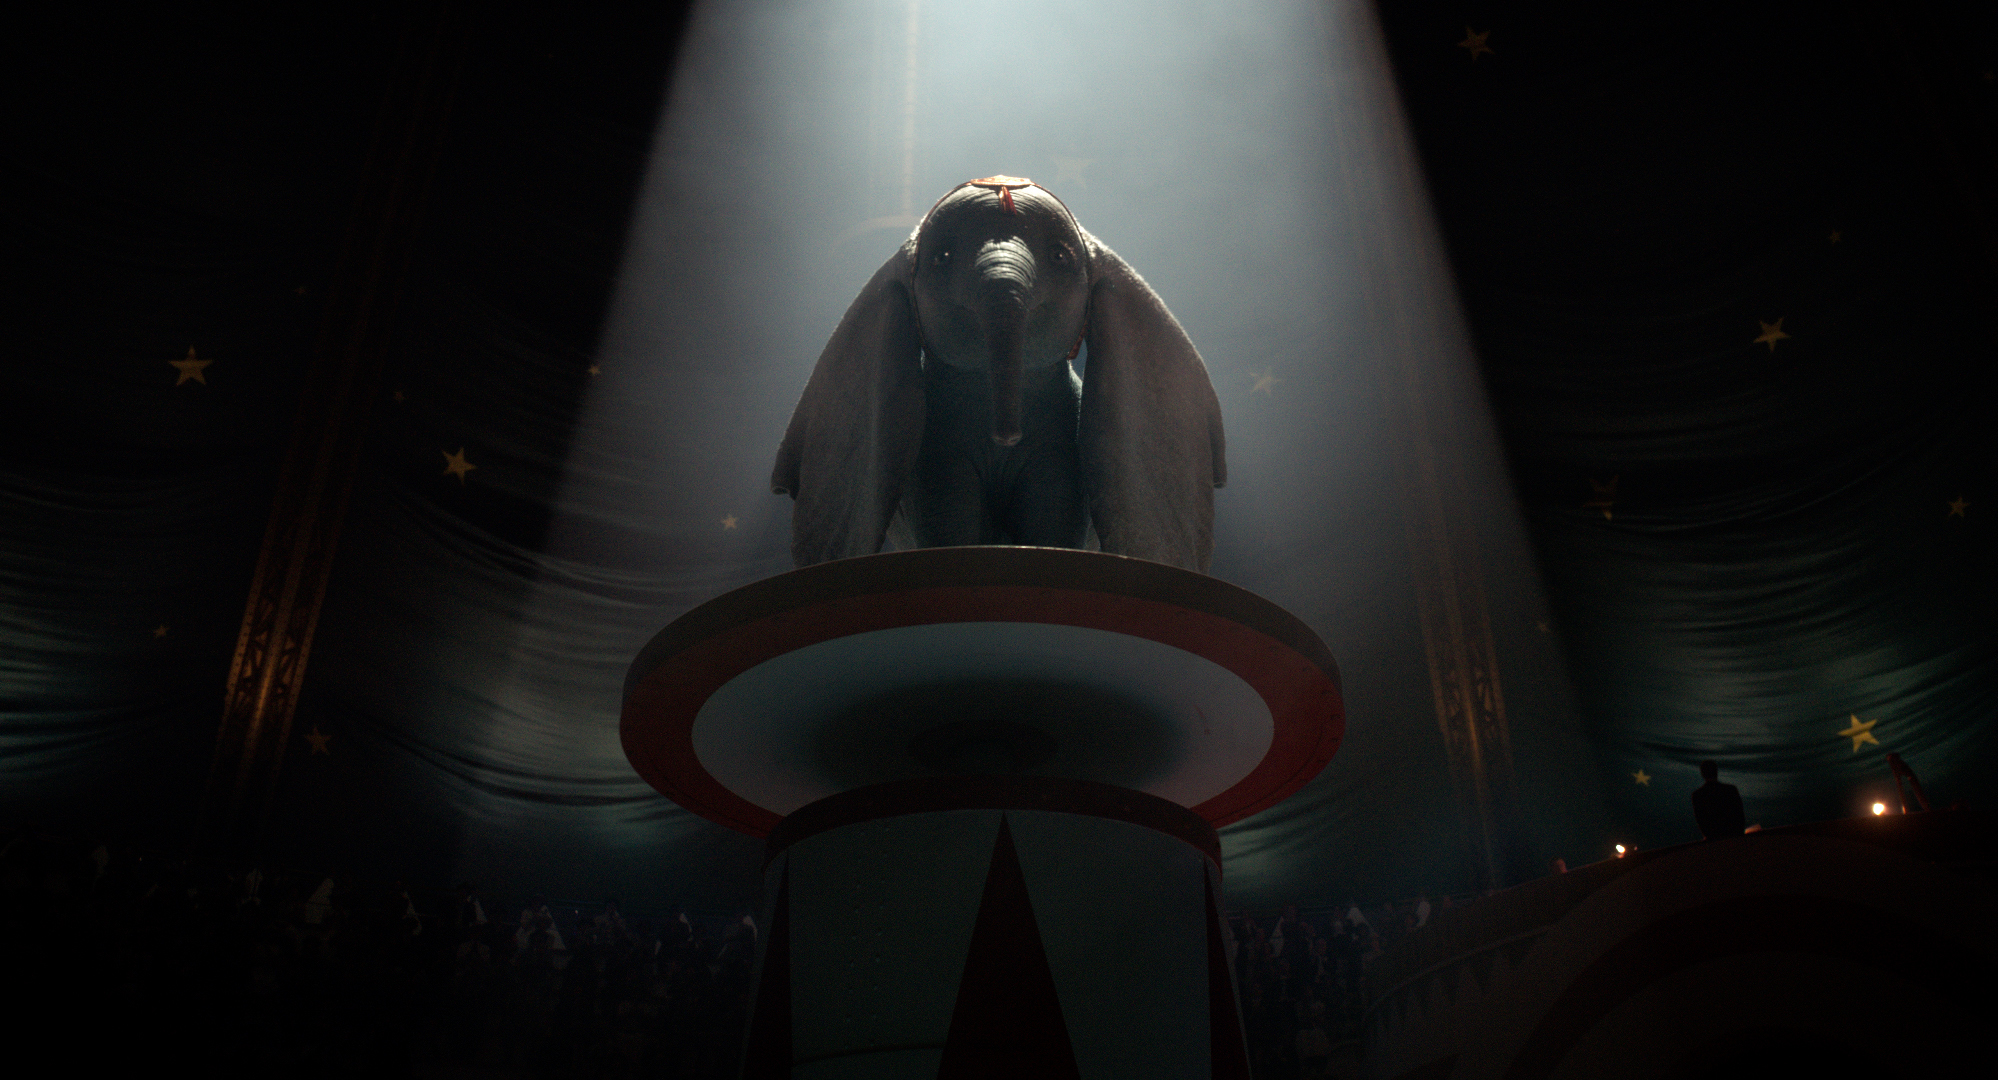 """Dumbo, the flying elephant, prepares for his big moment in the Dreamland circus, in a scene from Disney's  """"Dumbo,"""" a live-action remake of the 1941 animated classic. (Photo courtesy Walt Disney Pictures)"""